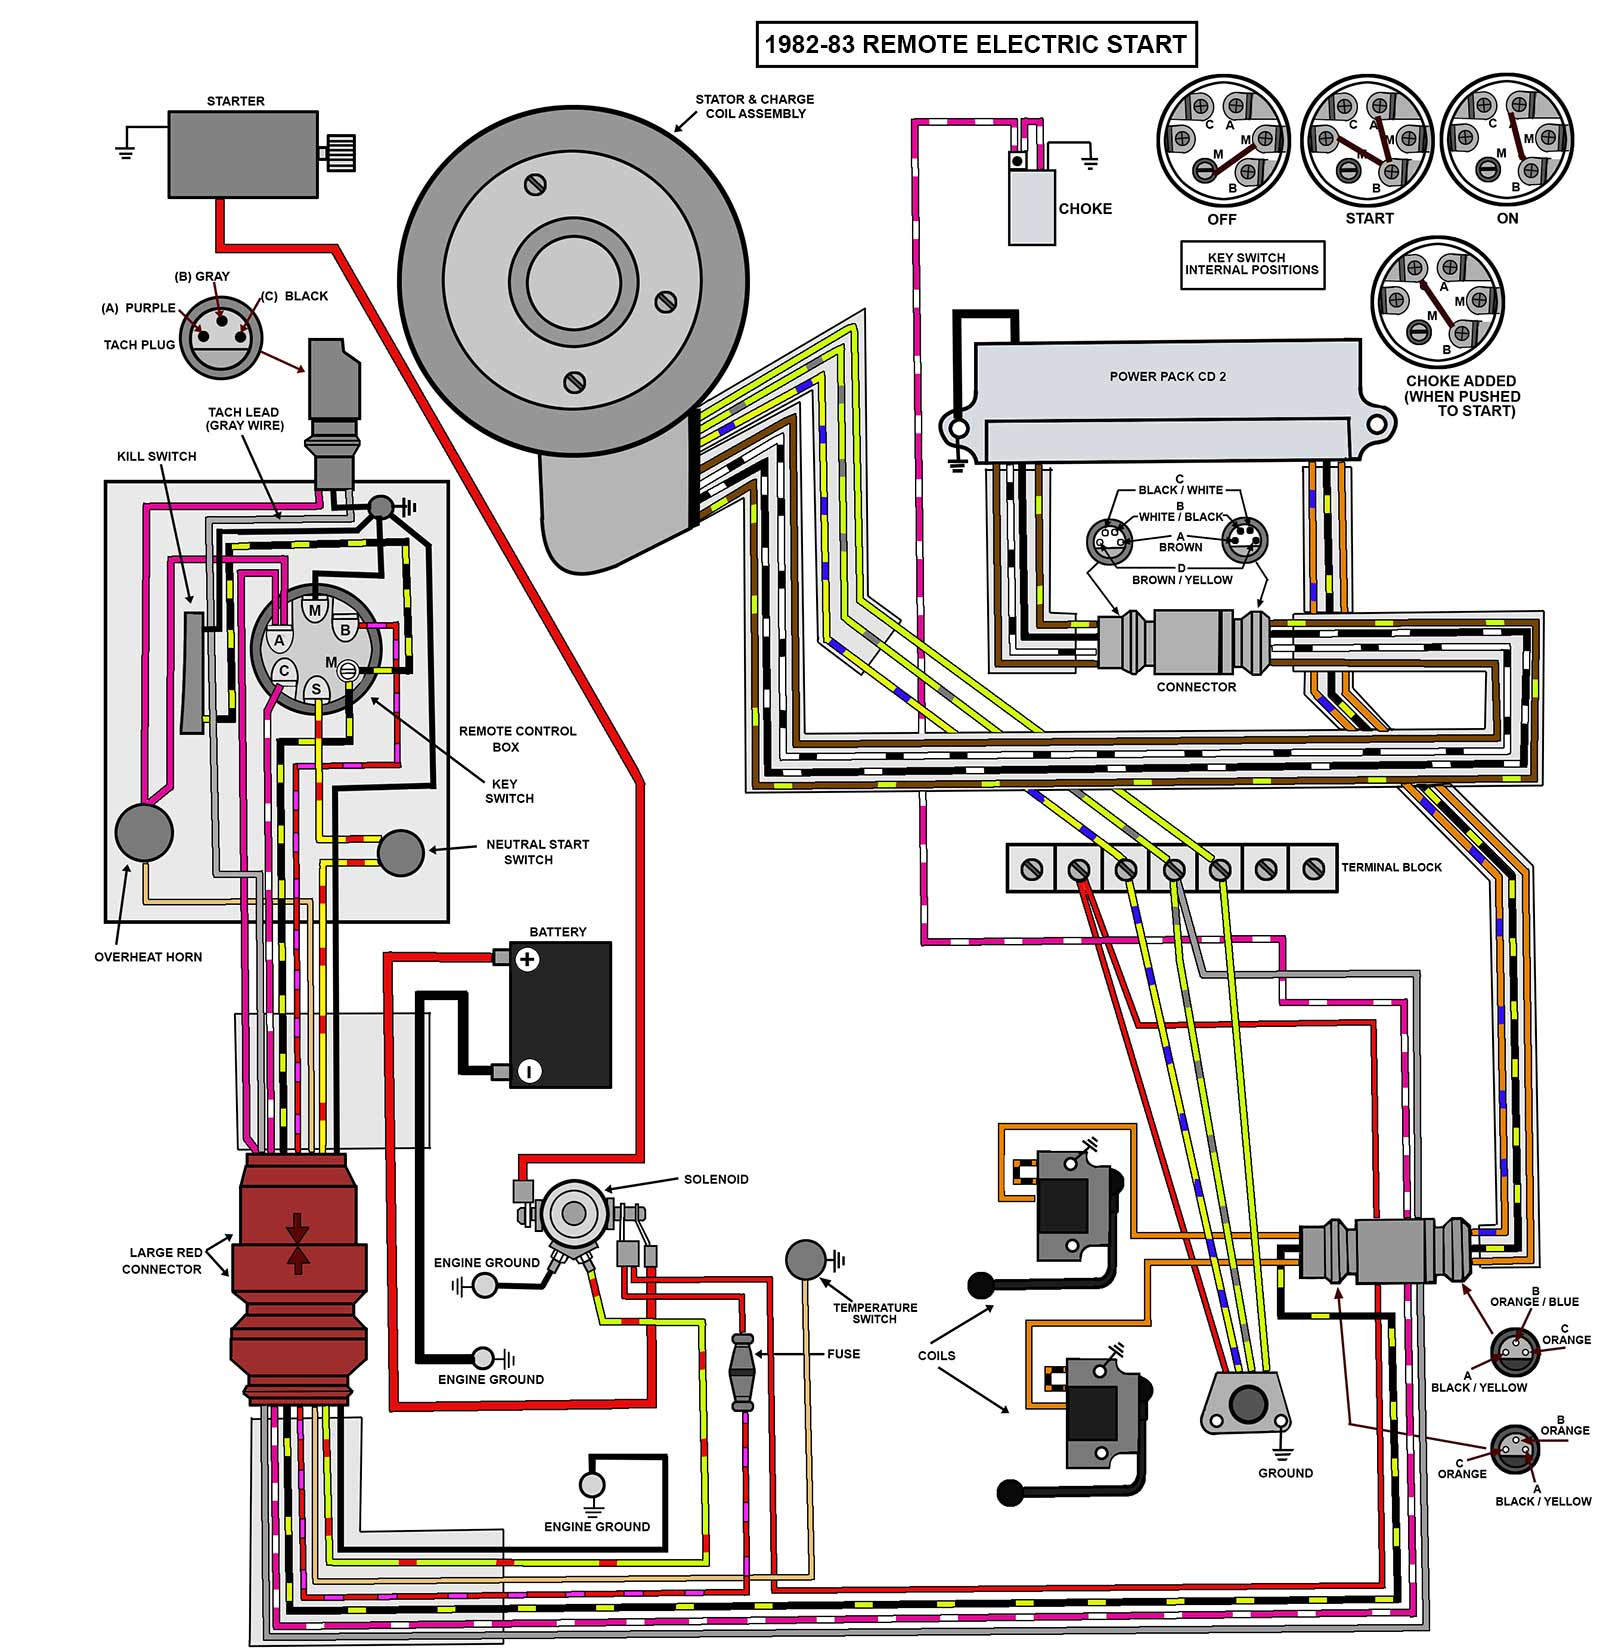 25 Horse Johnson Motor Diagram - Wiring Diagram Center